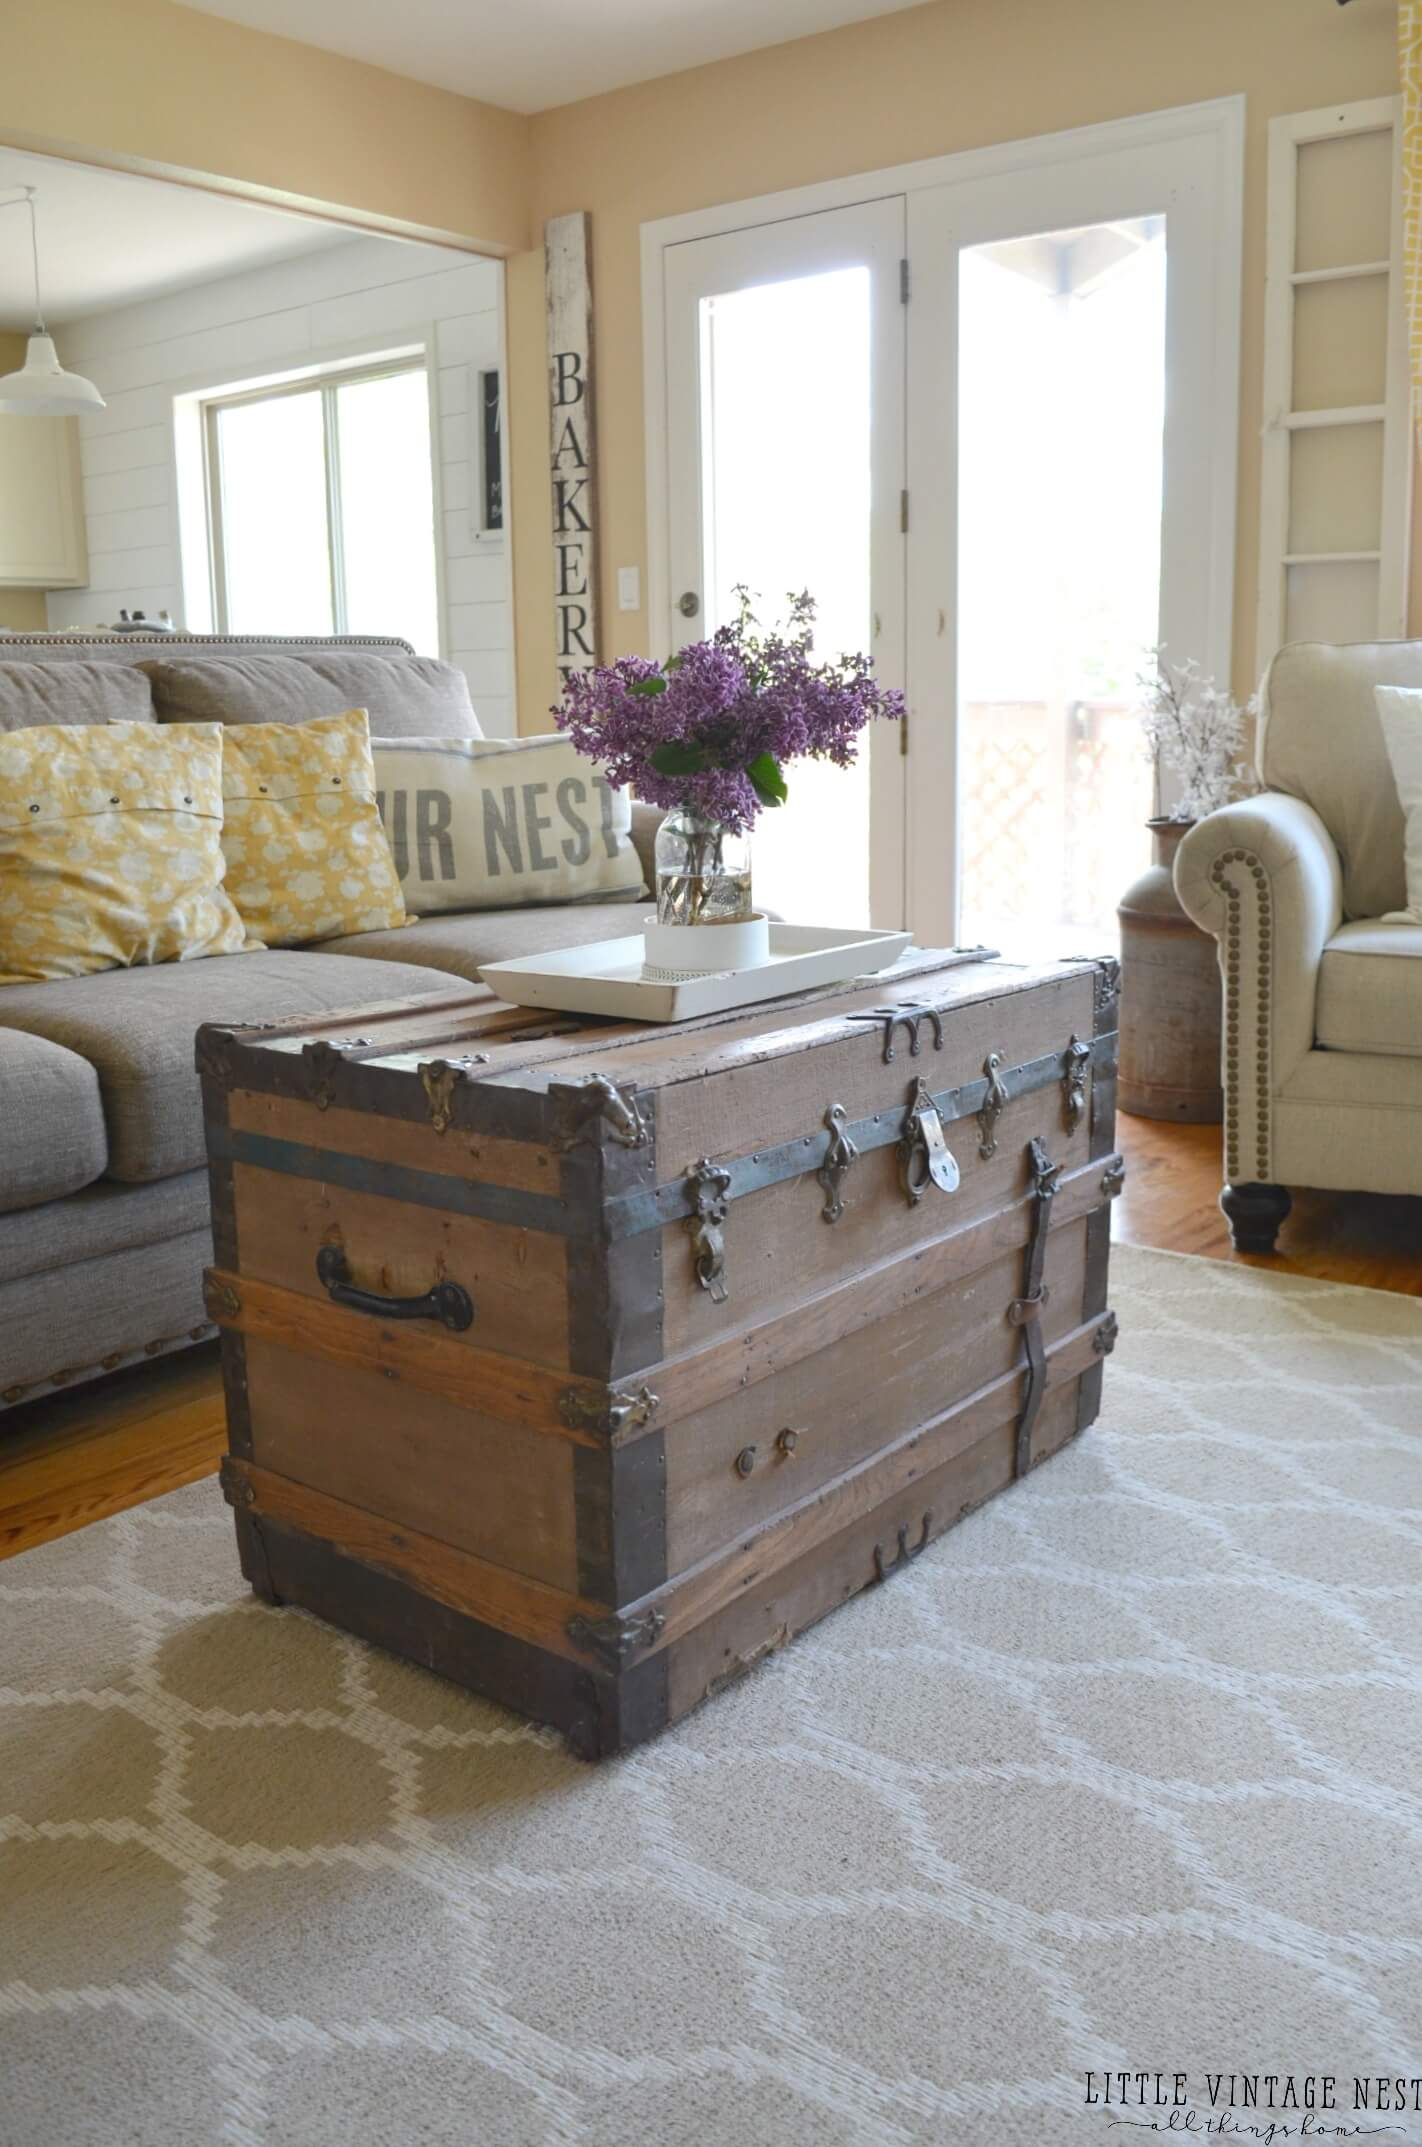 how to decorate a large living room with little furniture decorating small rooms on budget 35 best farmhouse decor ideas and designs for 2019 antique steamer trunk coffee table